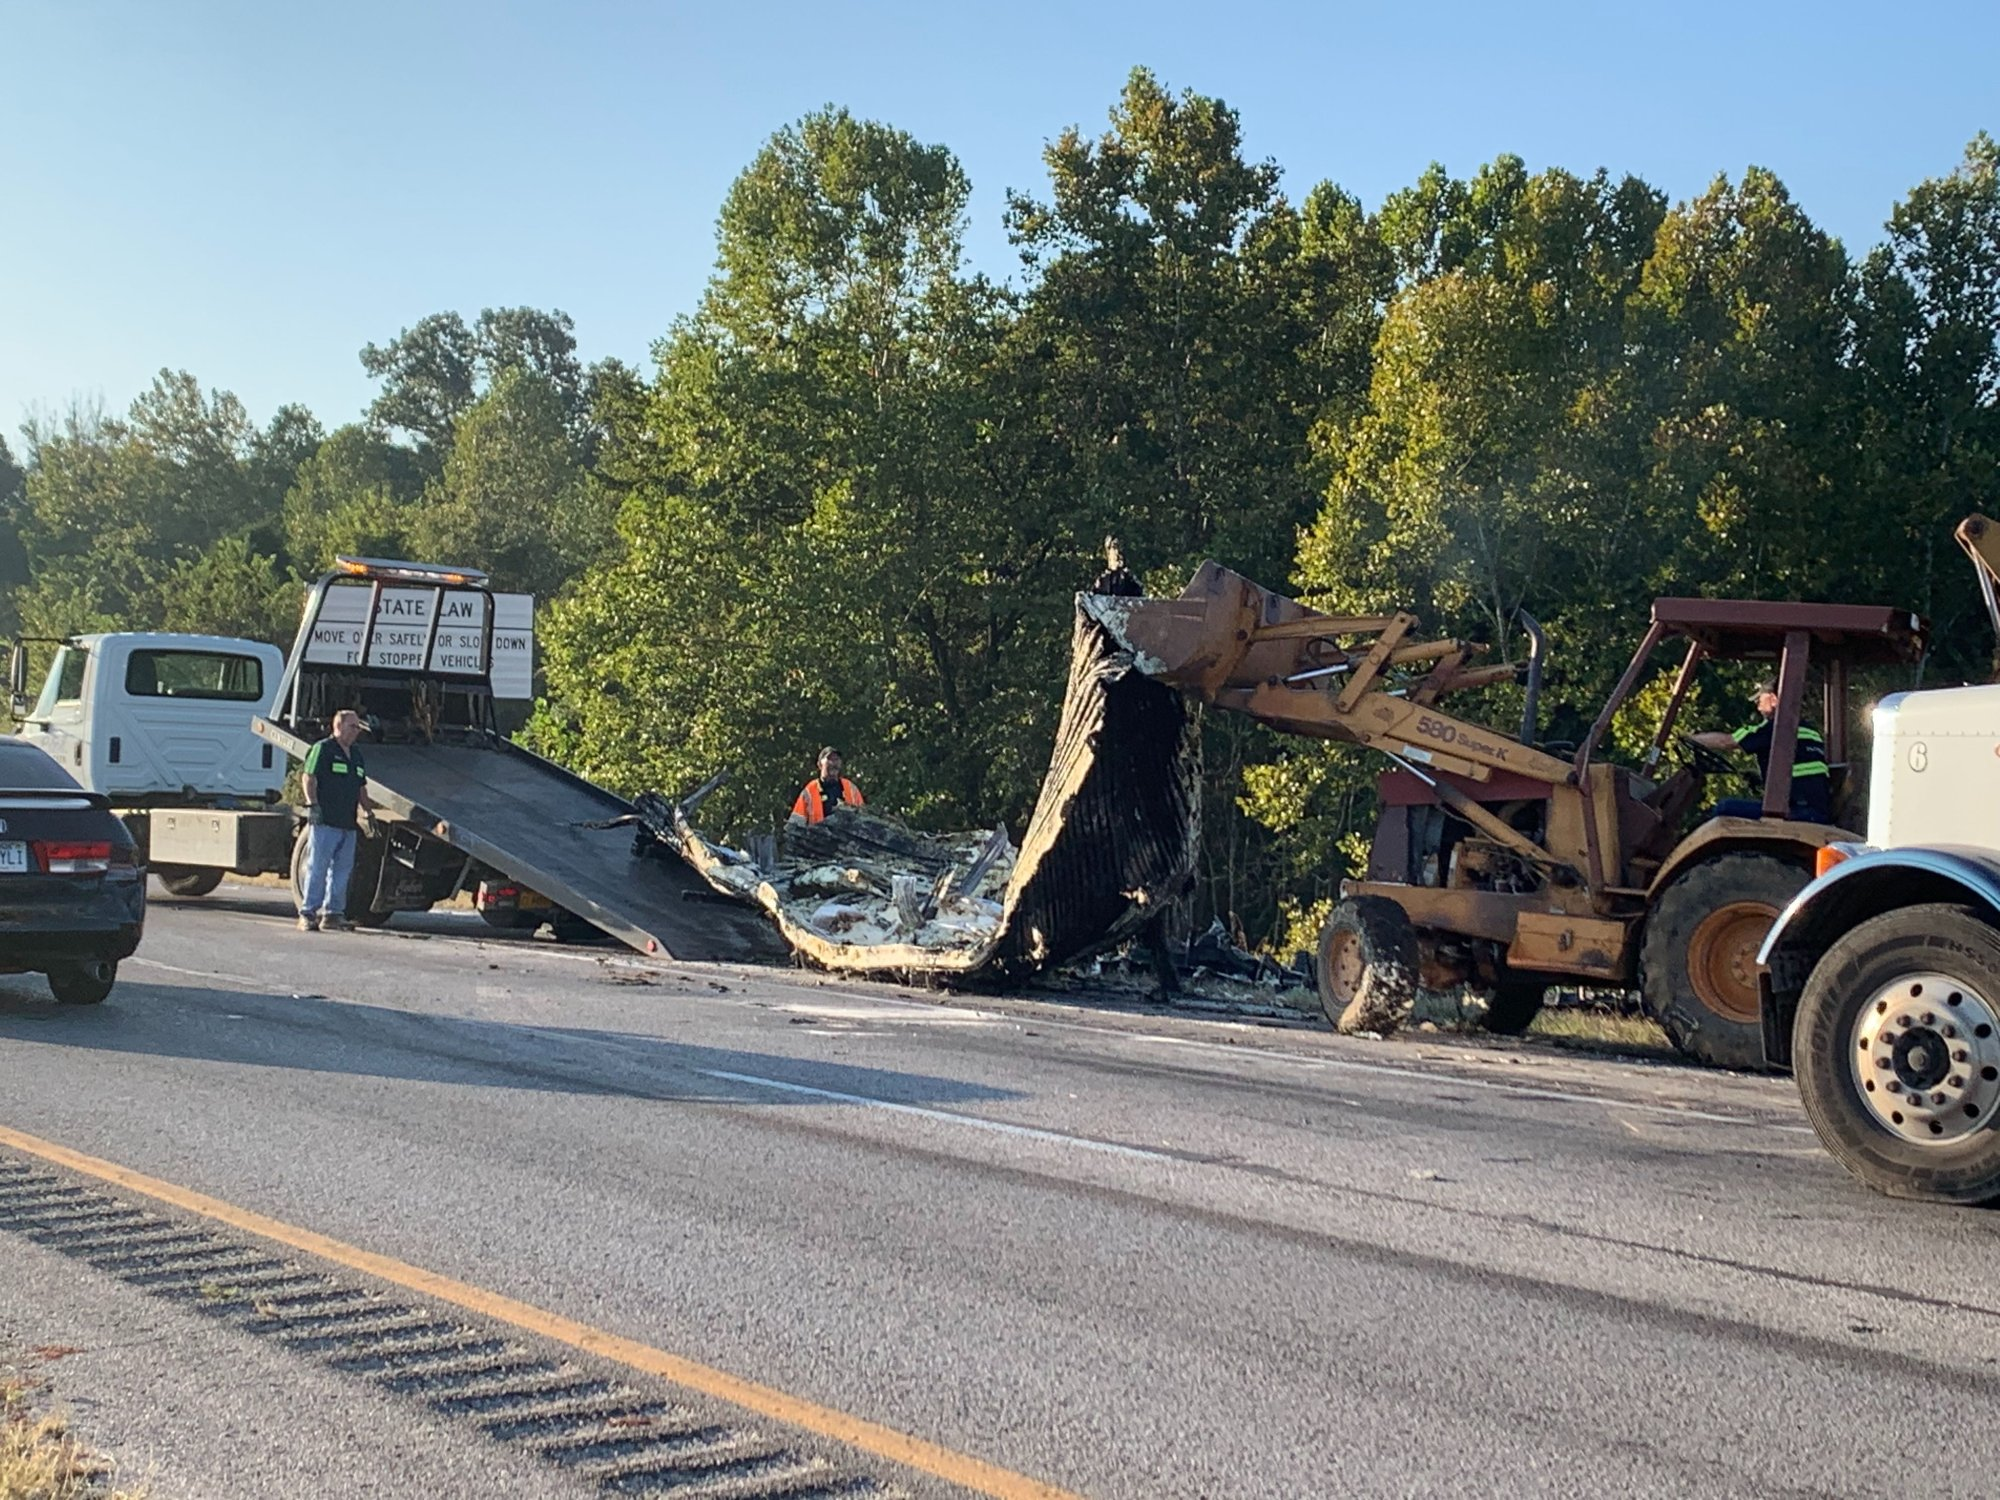 Crews work to clean up the wreckage of a semi that caught fire overnight near Bella Vista on Interstate 49 on Friday, Sept. 27, 2019. (Tiffany Lee/KFSM)